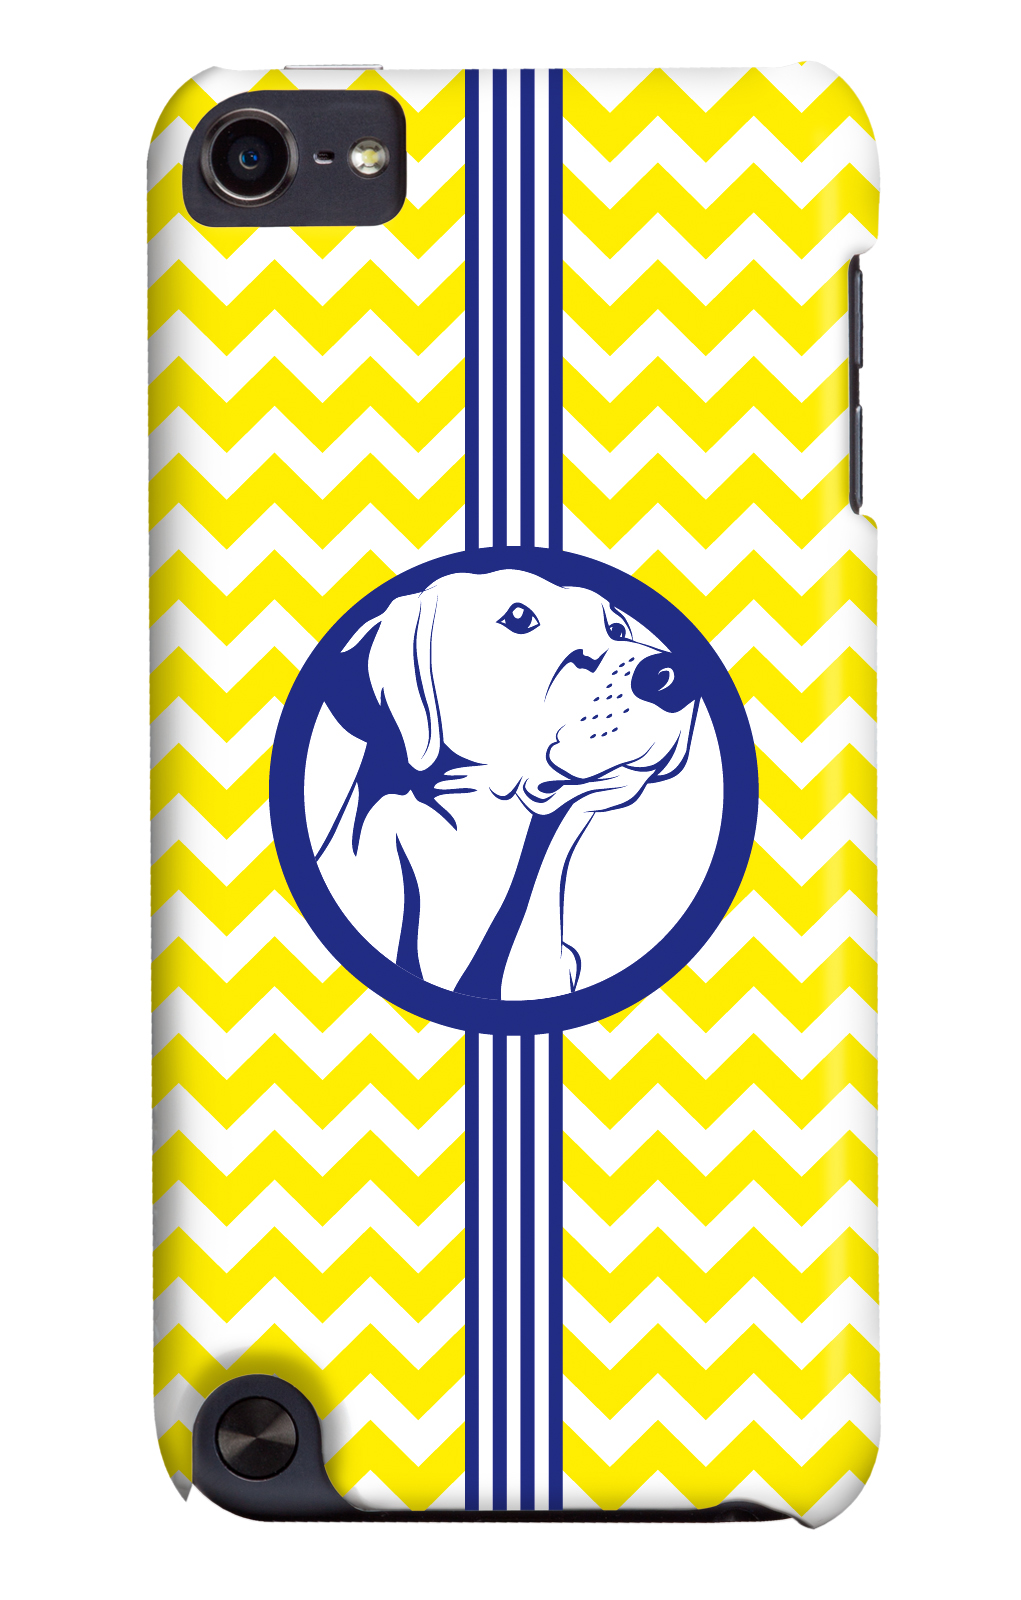 It's a Lab Thing Labador iphone case yellow-navy 3 shades of dog